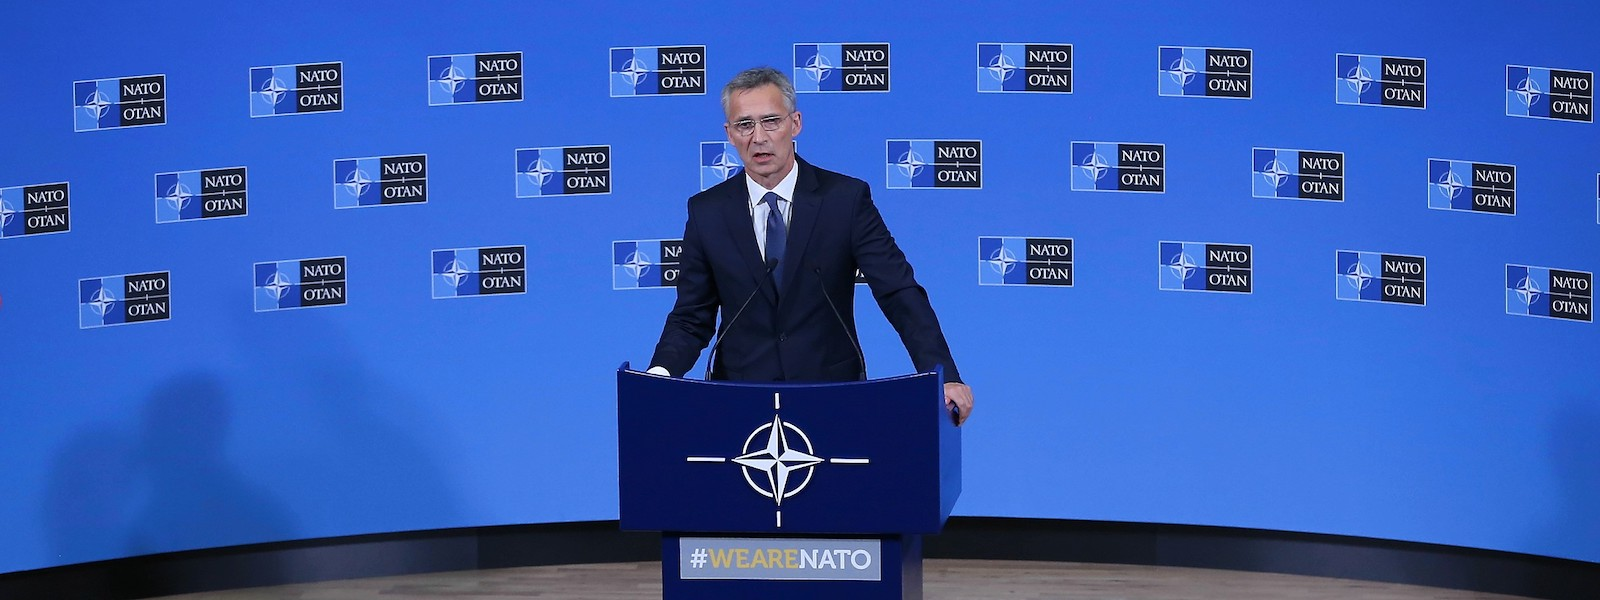 NATO Secretary General Jens Stoltenberg speaks in Belgium (Photo: Anadolu Agency/Getty)